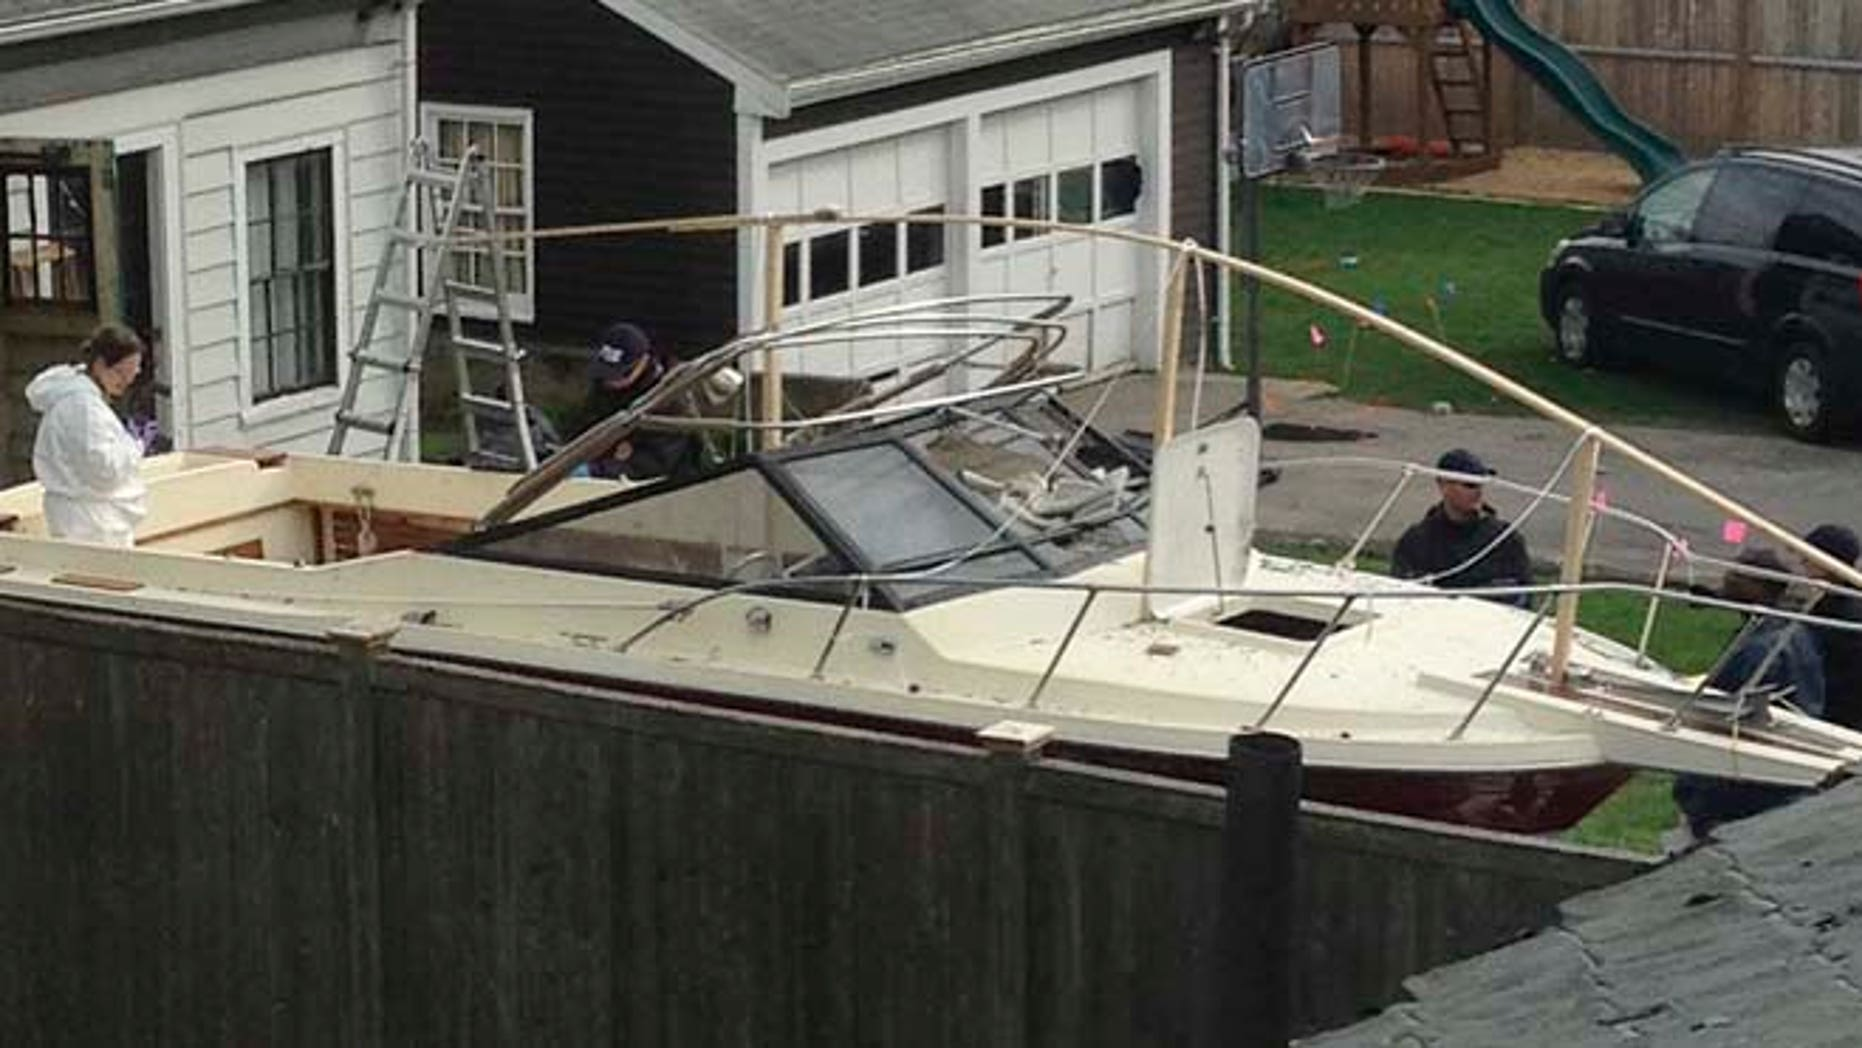 In this April 20, 2013 file photo, investigators work near the boat in Watertown, Mass., where the previous night police captured Dzhokhar Tsarnaev, the surviving Boston Marathon bombing suspect, after a car chase and gun battle earlier in the day left his older brother dead.